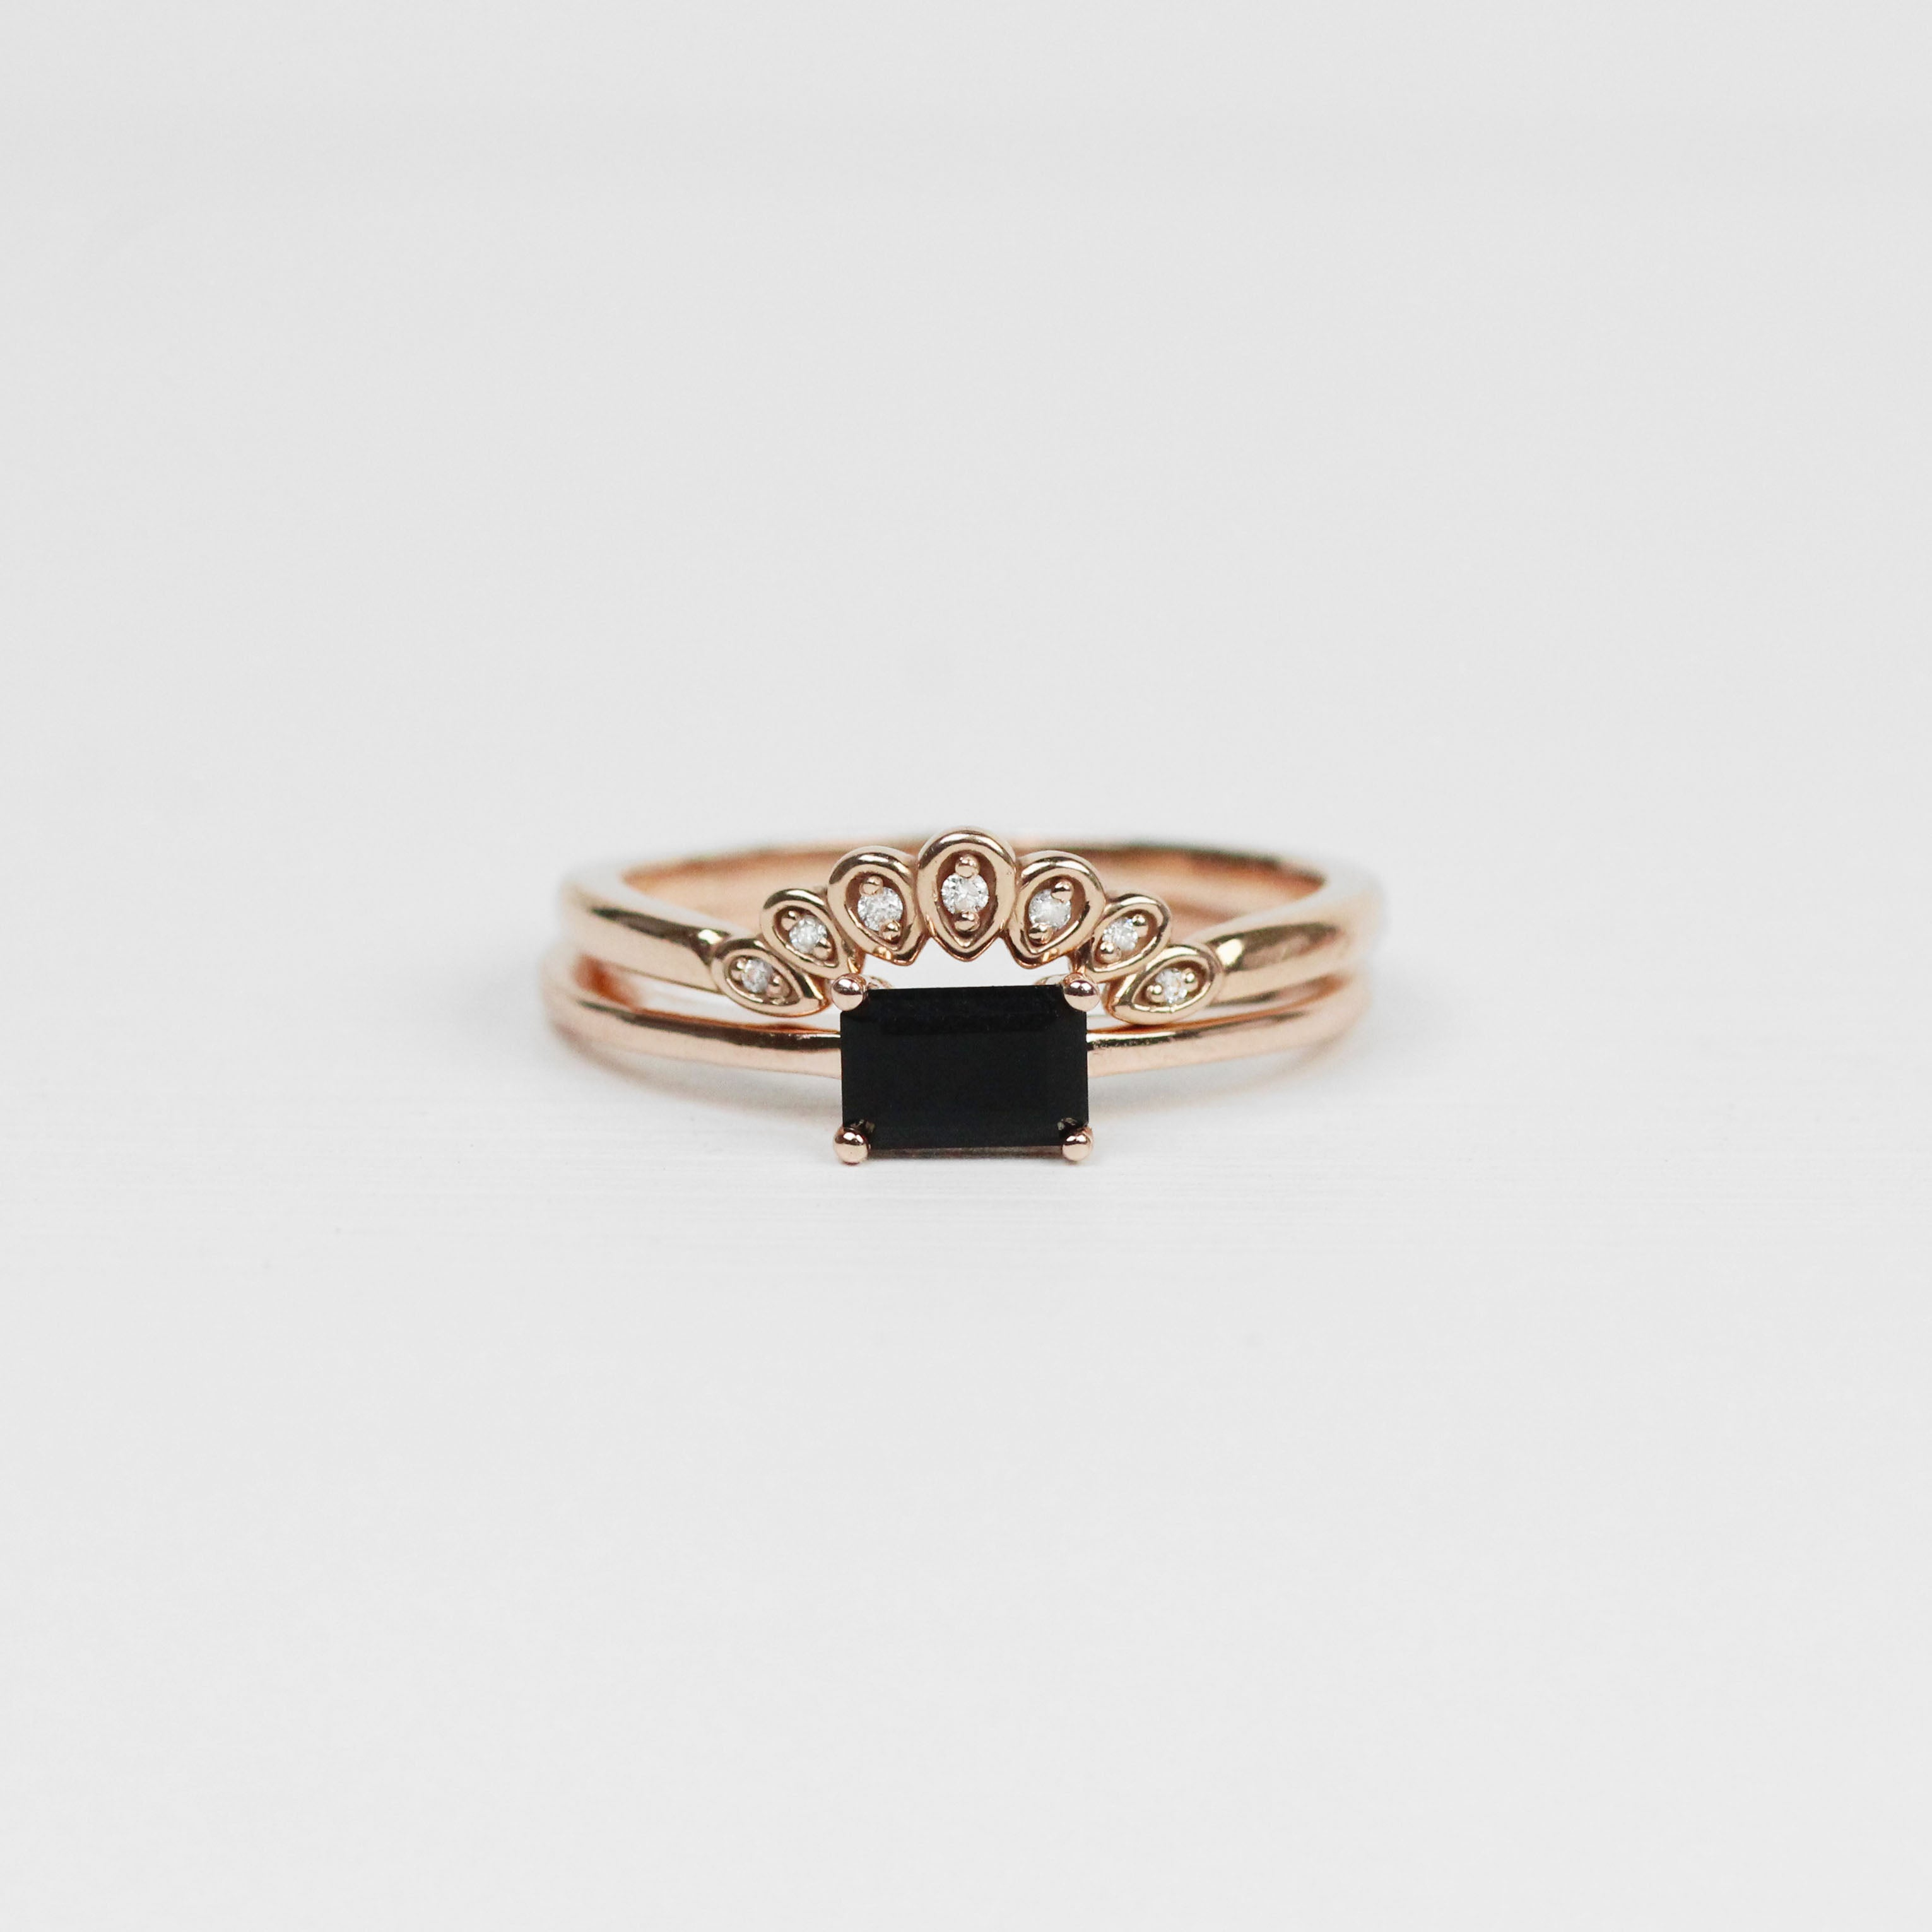 Ruthie Ring with Opaque Black Diamond - Your choice of metal - Custom